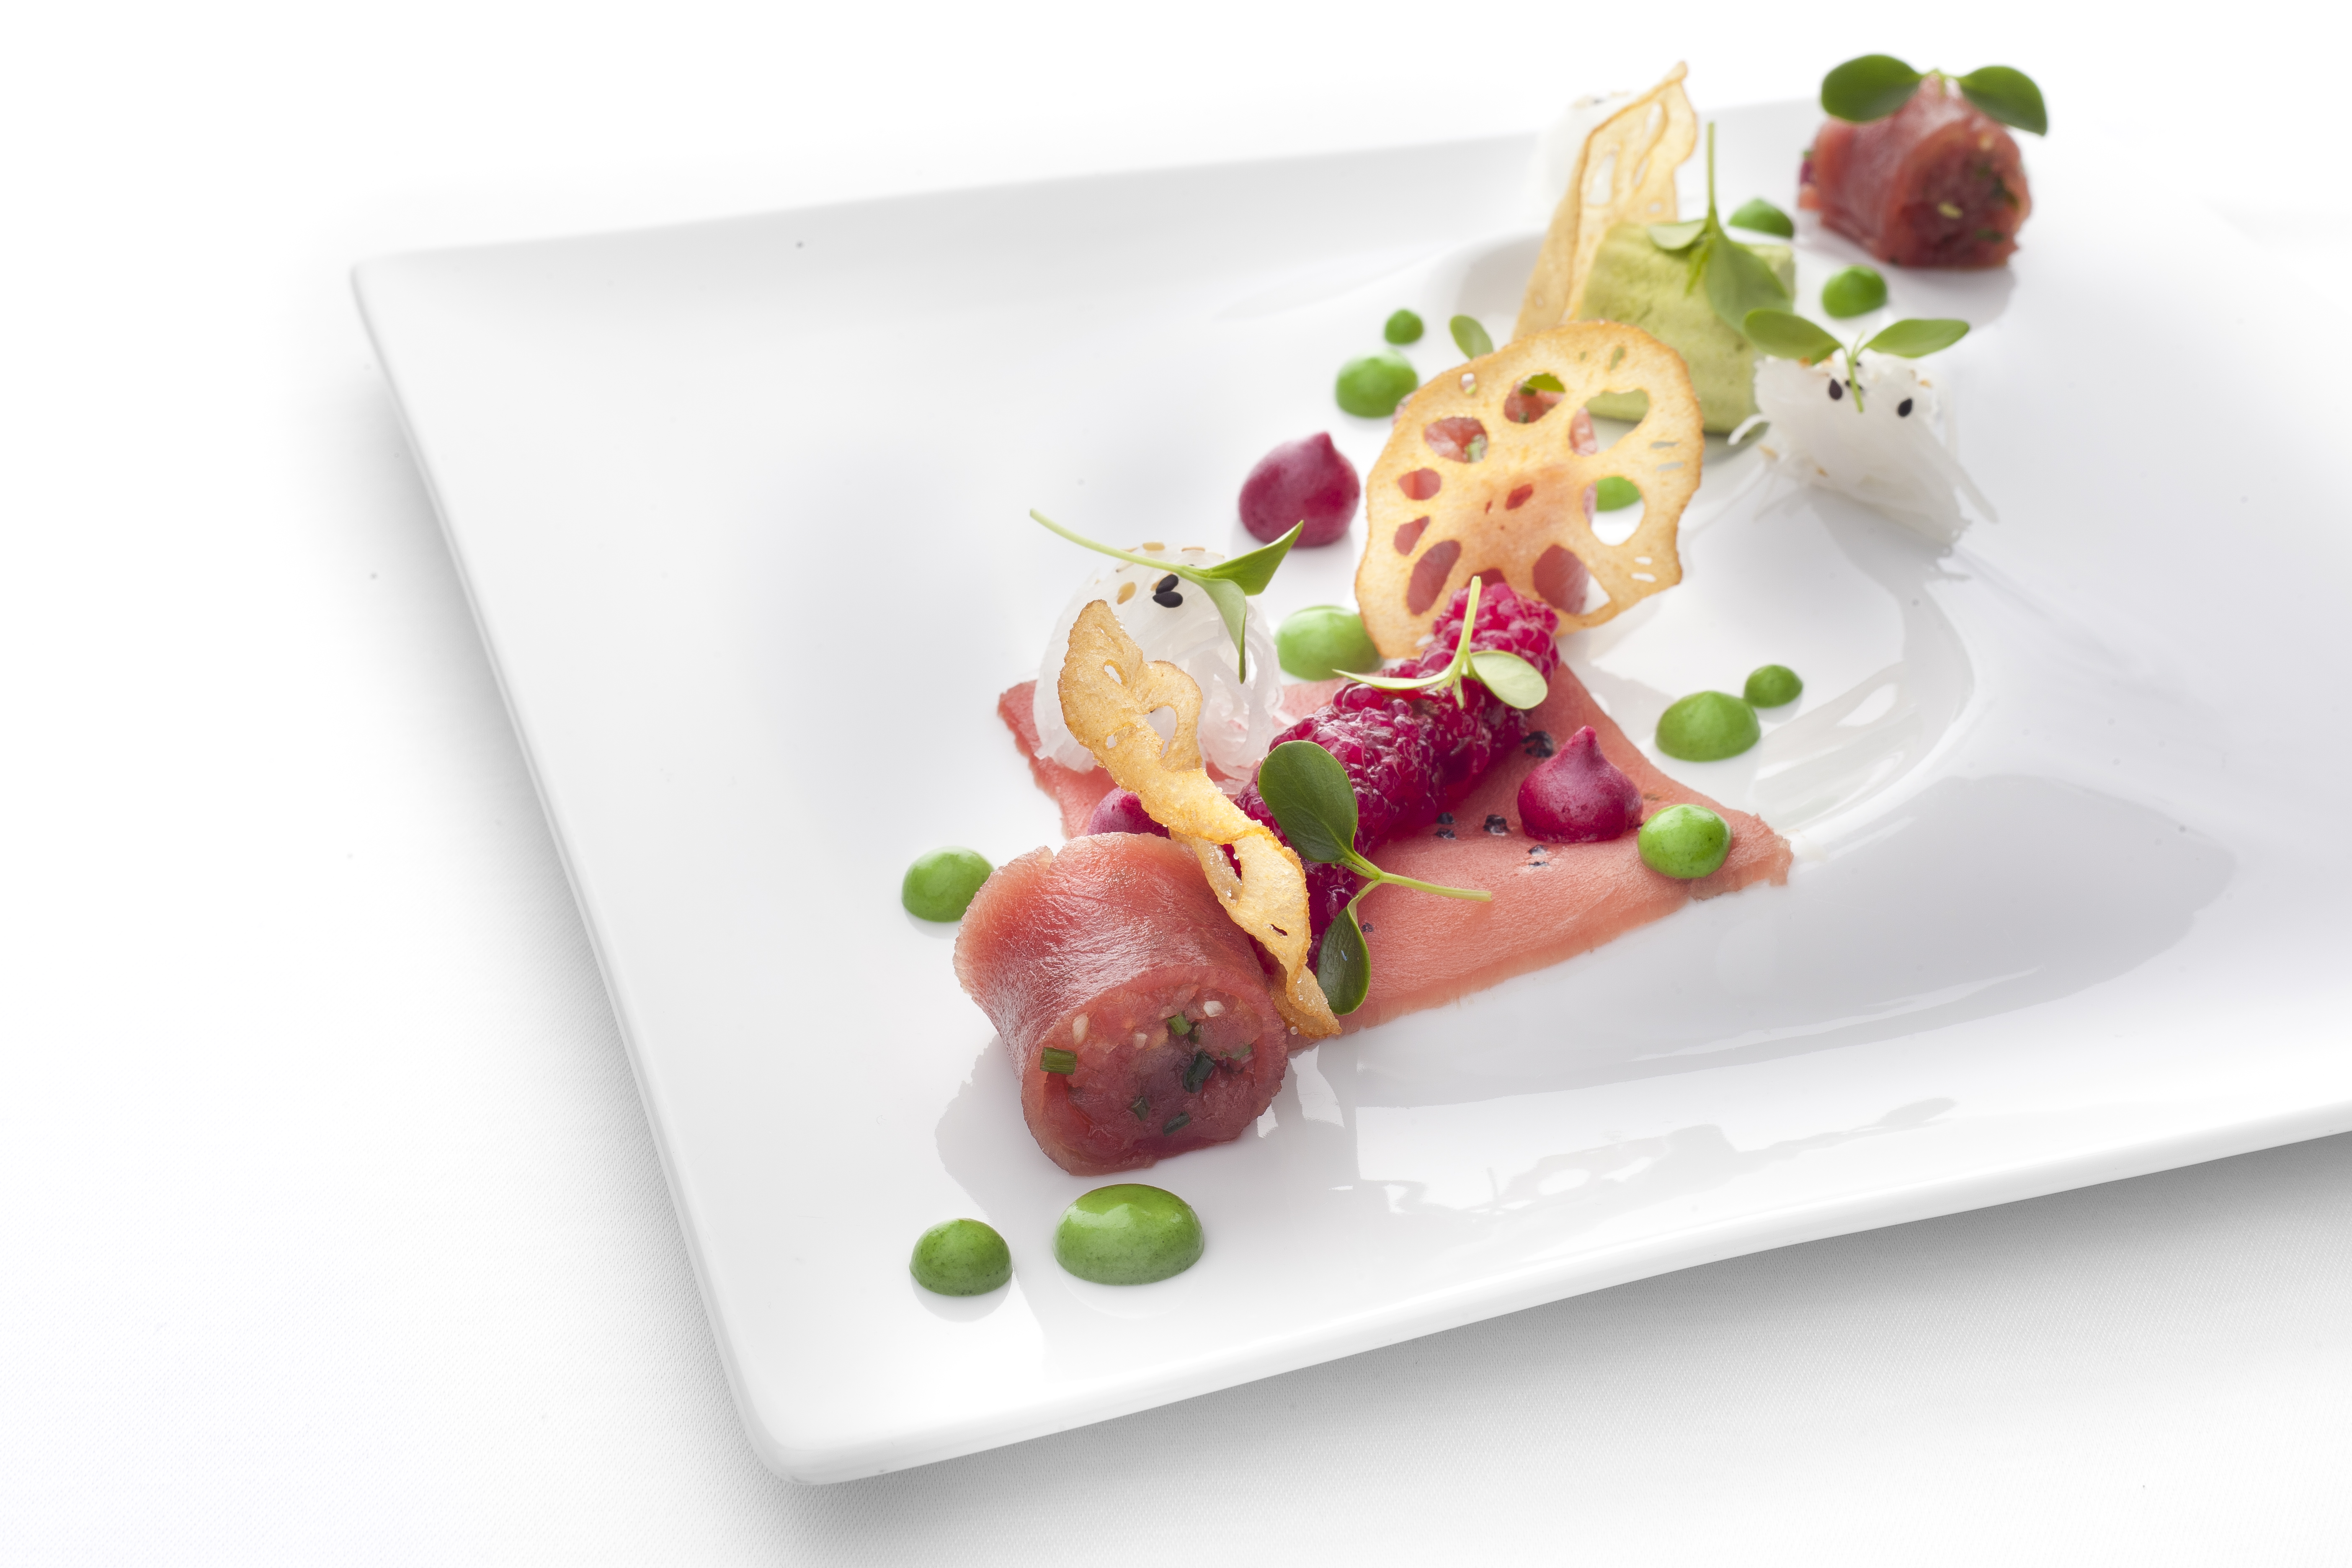 Tuna sashimi with tapioca, daikon and parsley mayonnaise